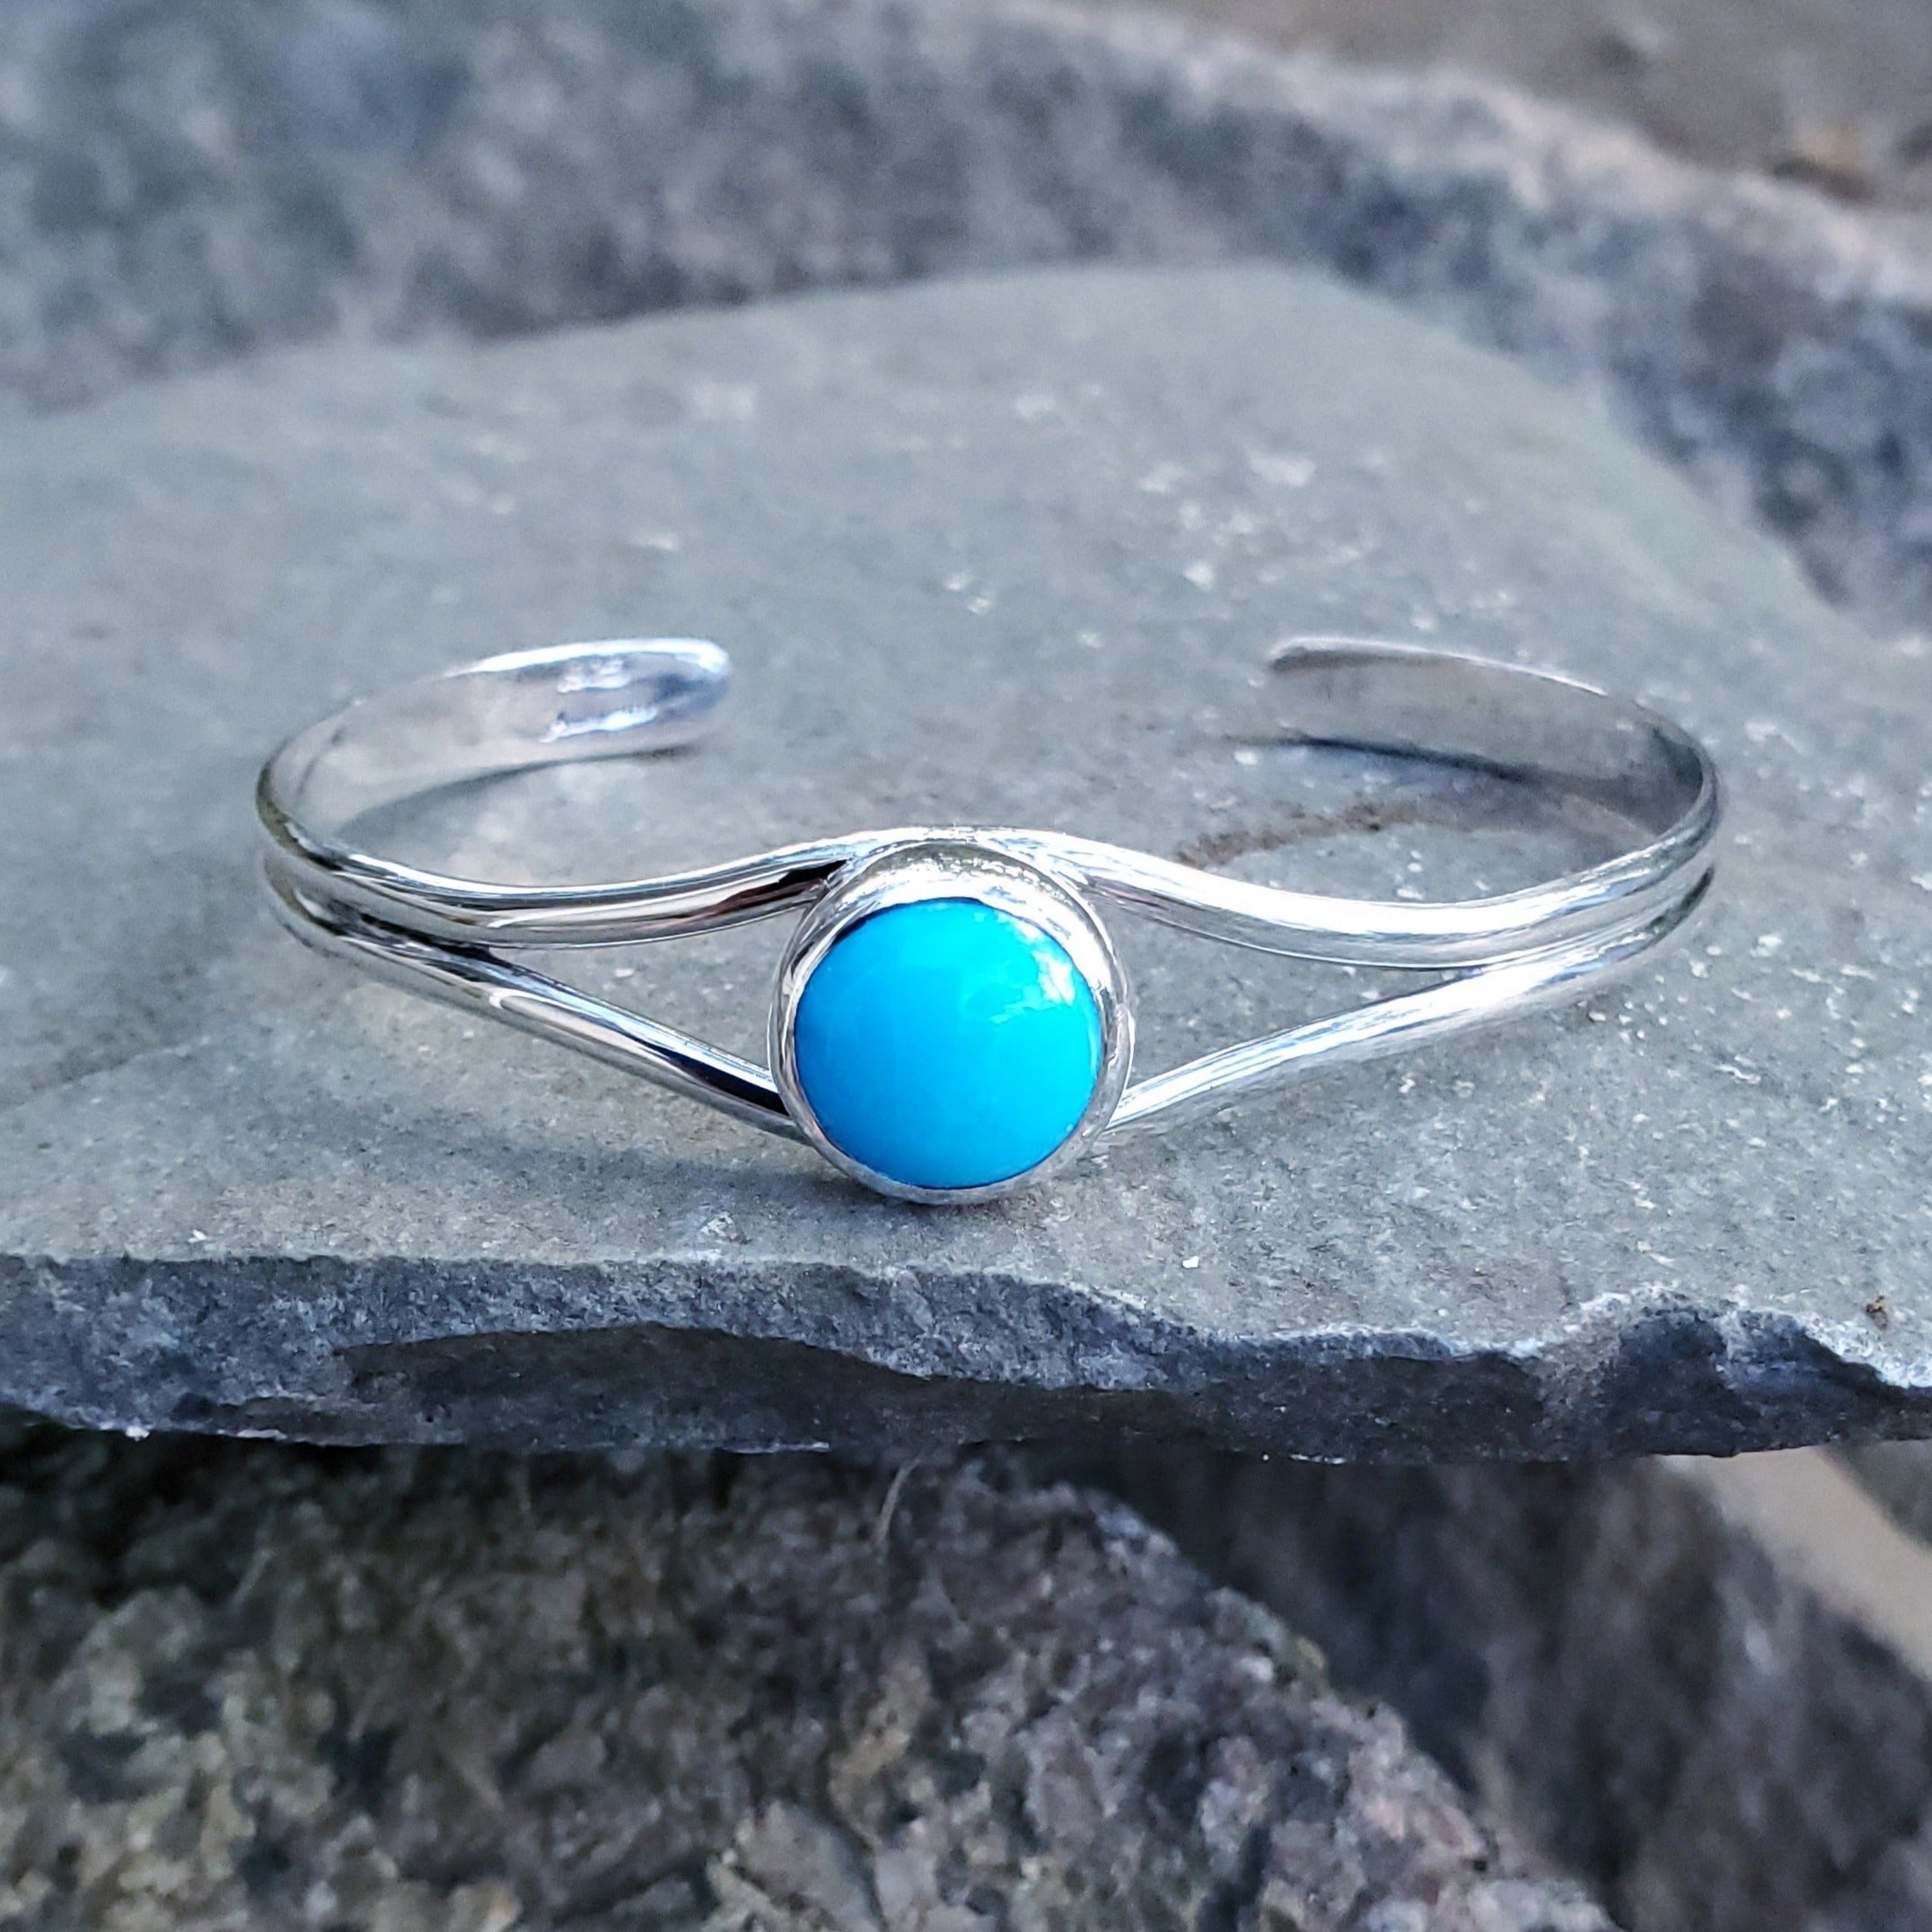 Turquoise cuff bracelet with open center